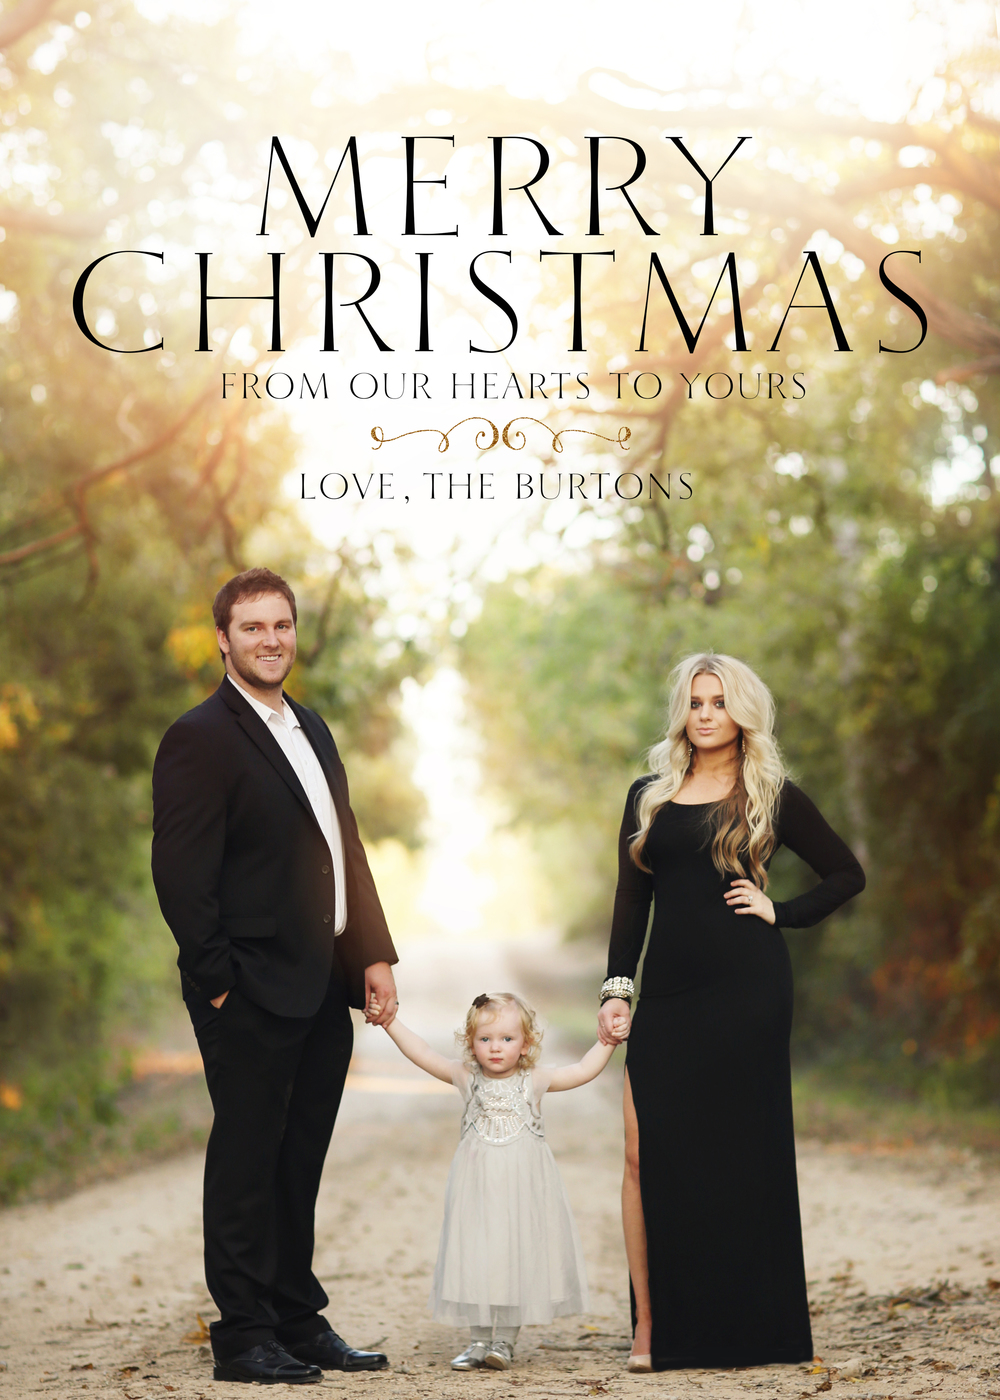 christmascard2014final2.jpg